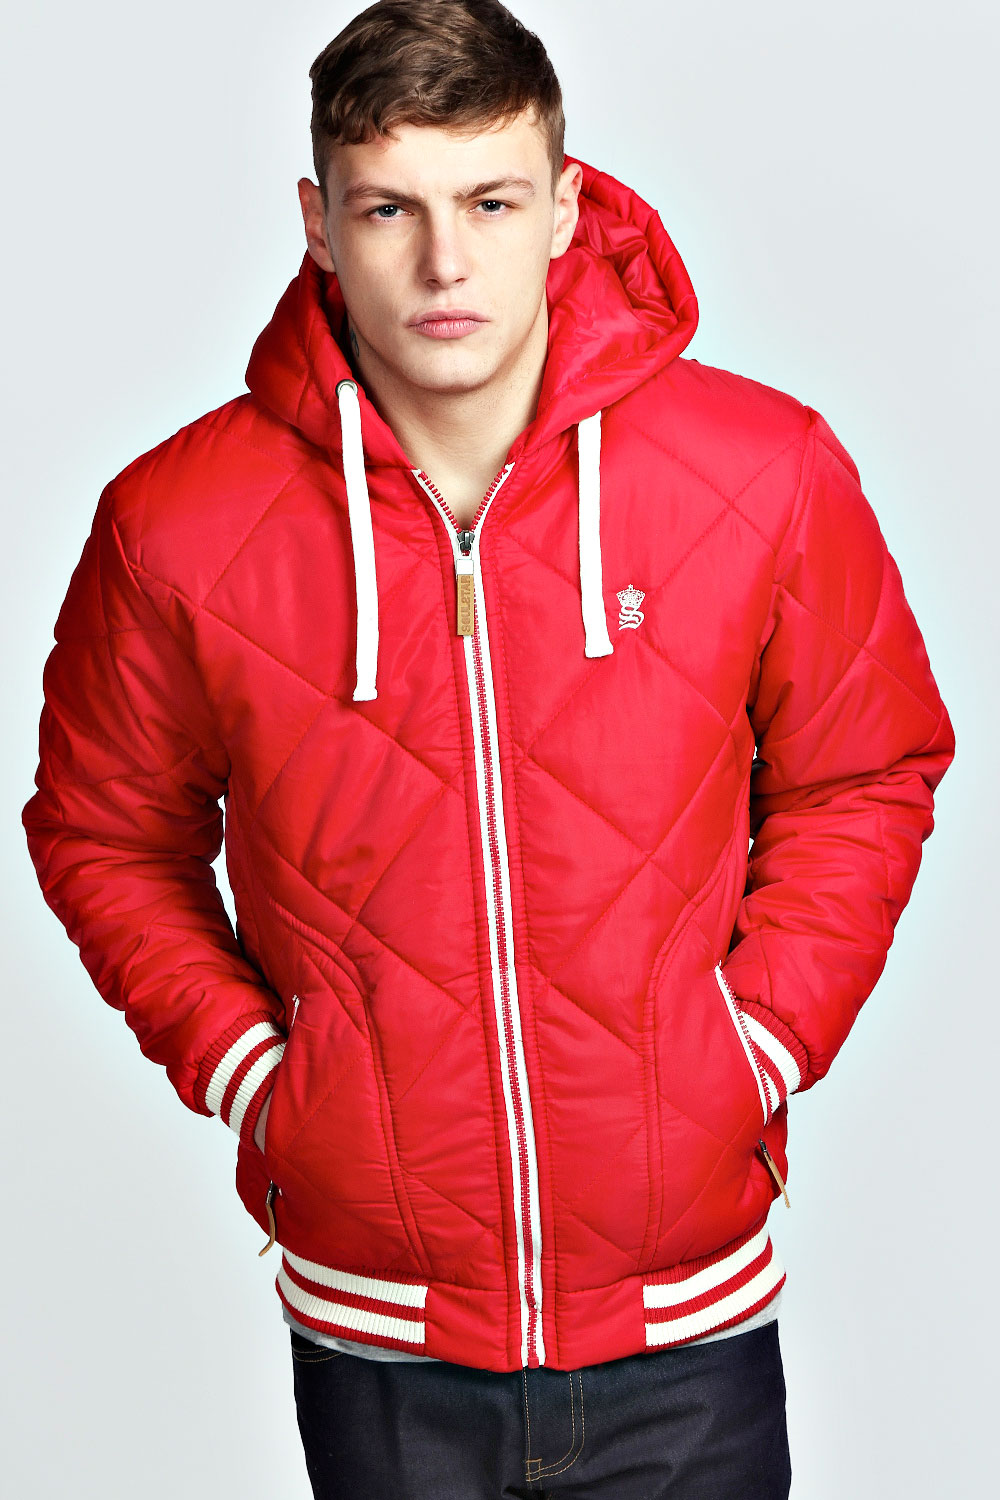 Boohoo-Mens-Quilted-Bomber-With-Hood-Jacket